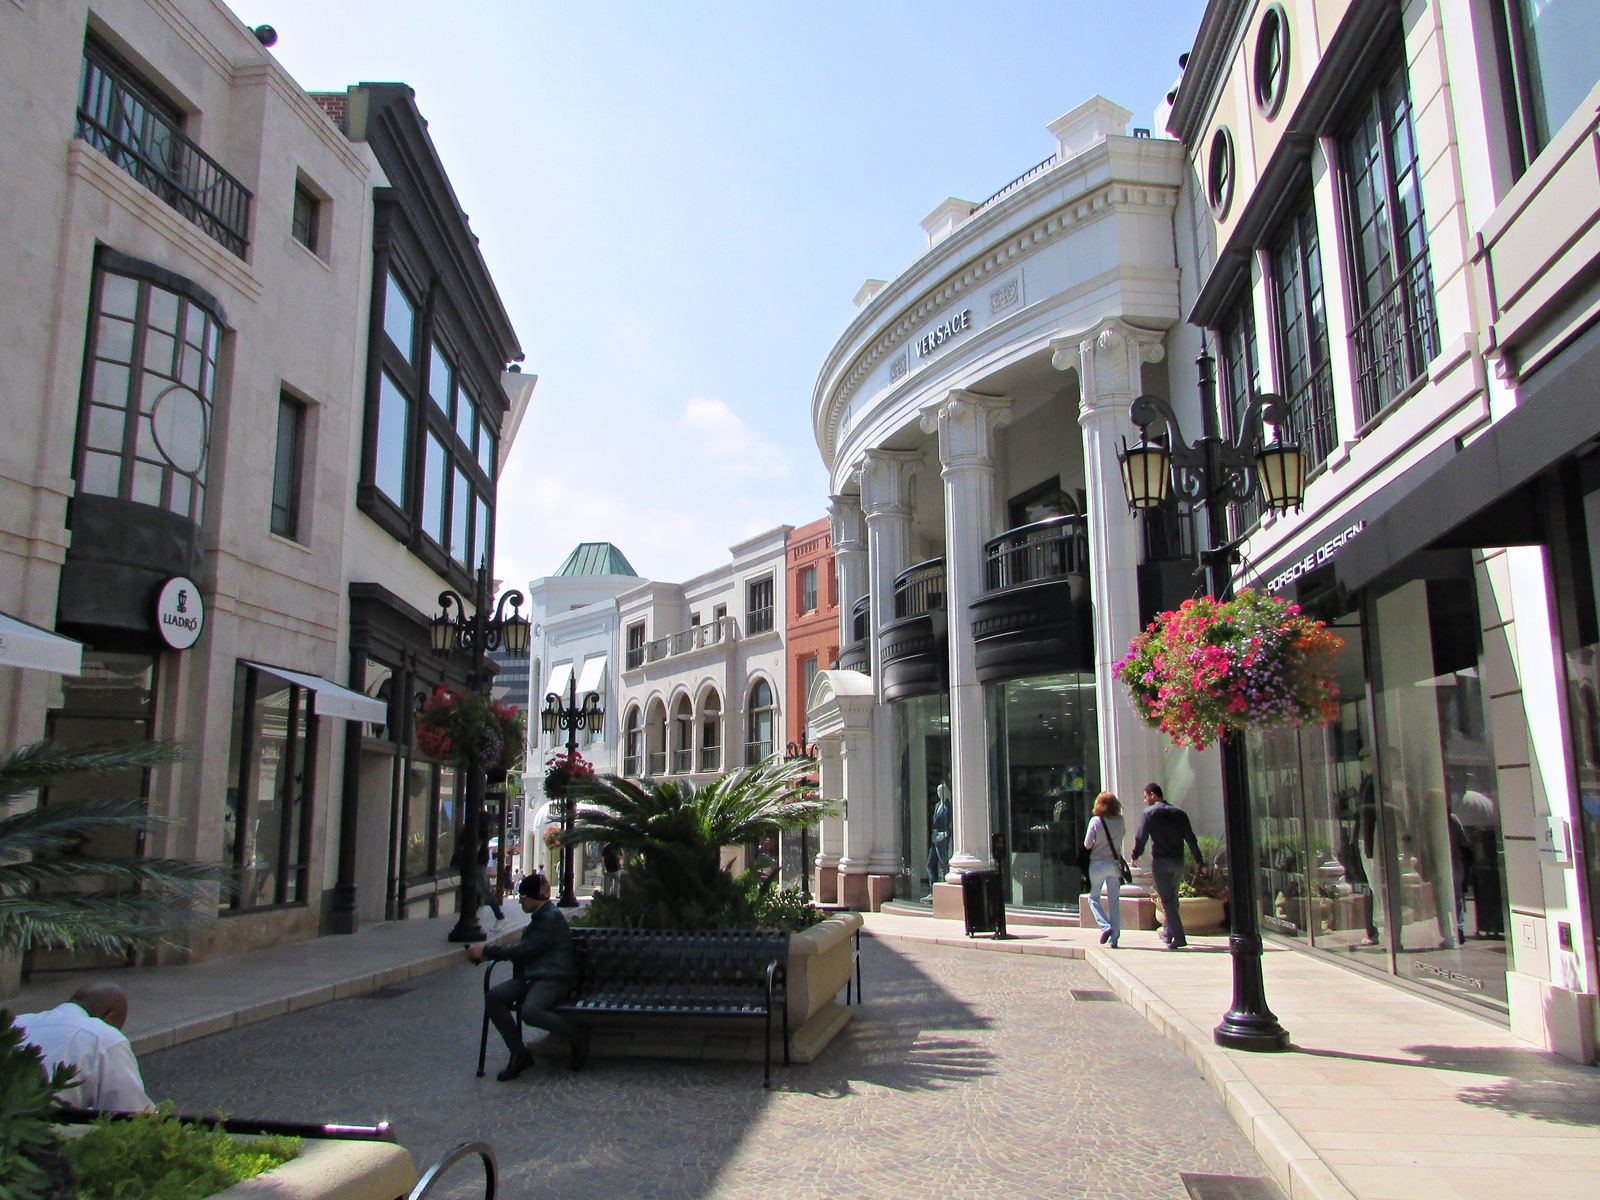 Rodeo Drive - Versace - USA Rundreise - Amerika Roadtrip - Fashionladyloves by Tamara Wagner - Travelblog